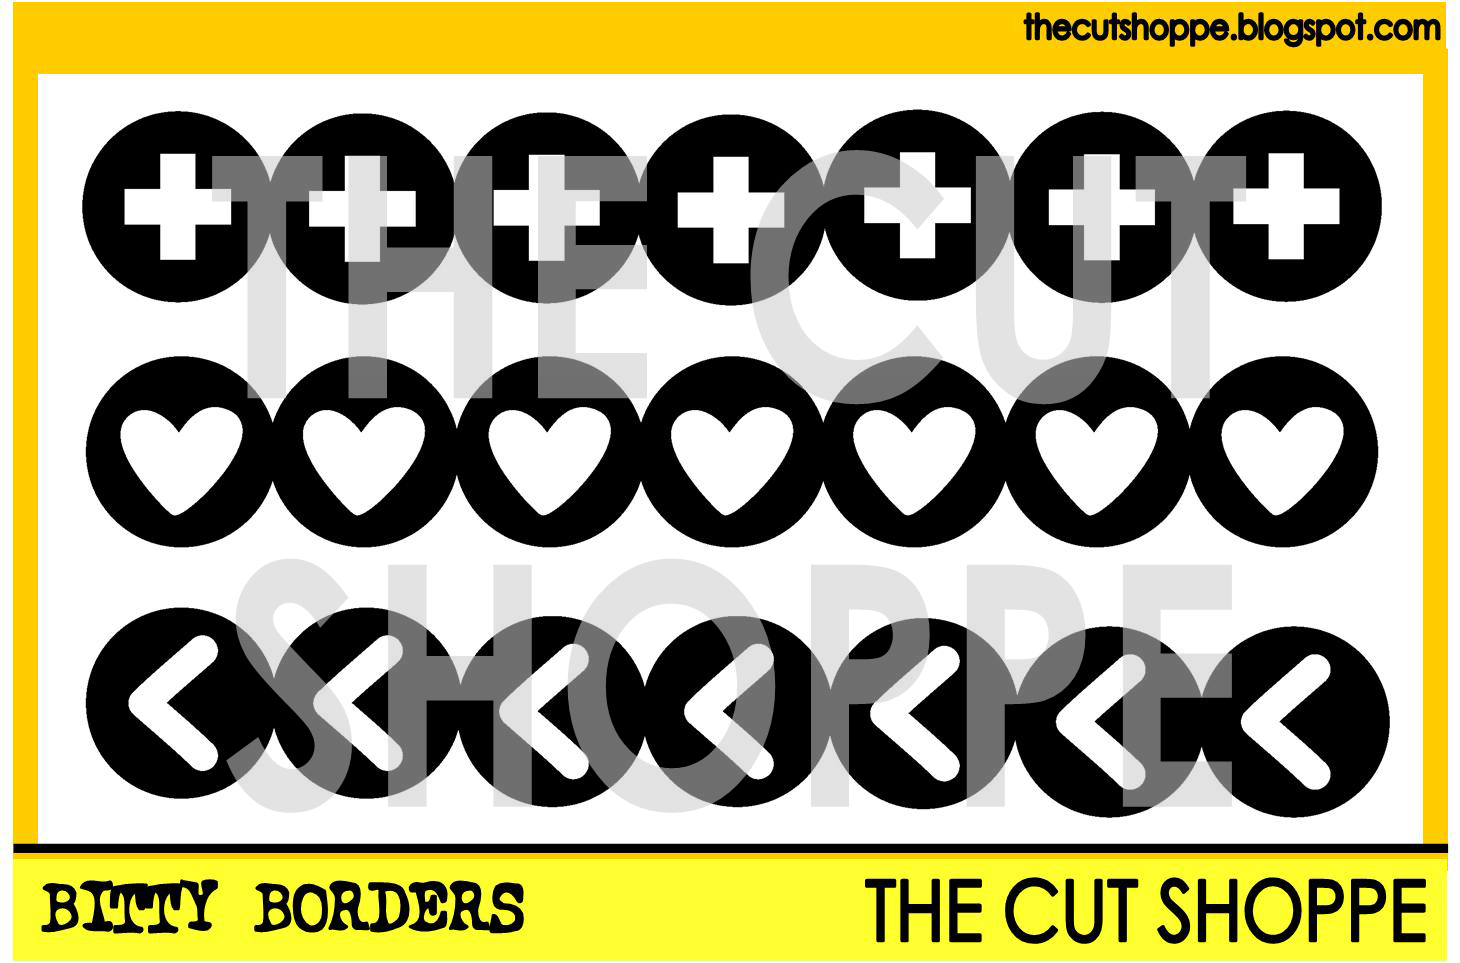 https://www.etsy.com/listing/215684032/the-bitty-borders-cut-file-consists-of-3?ref=shop_home_active_4